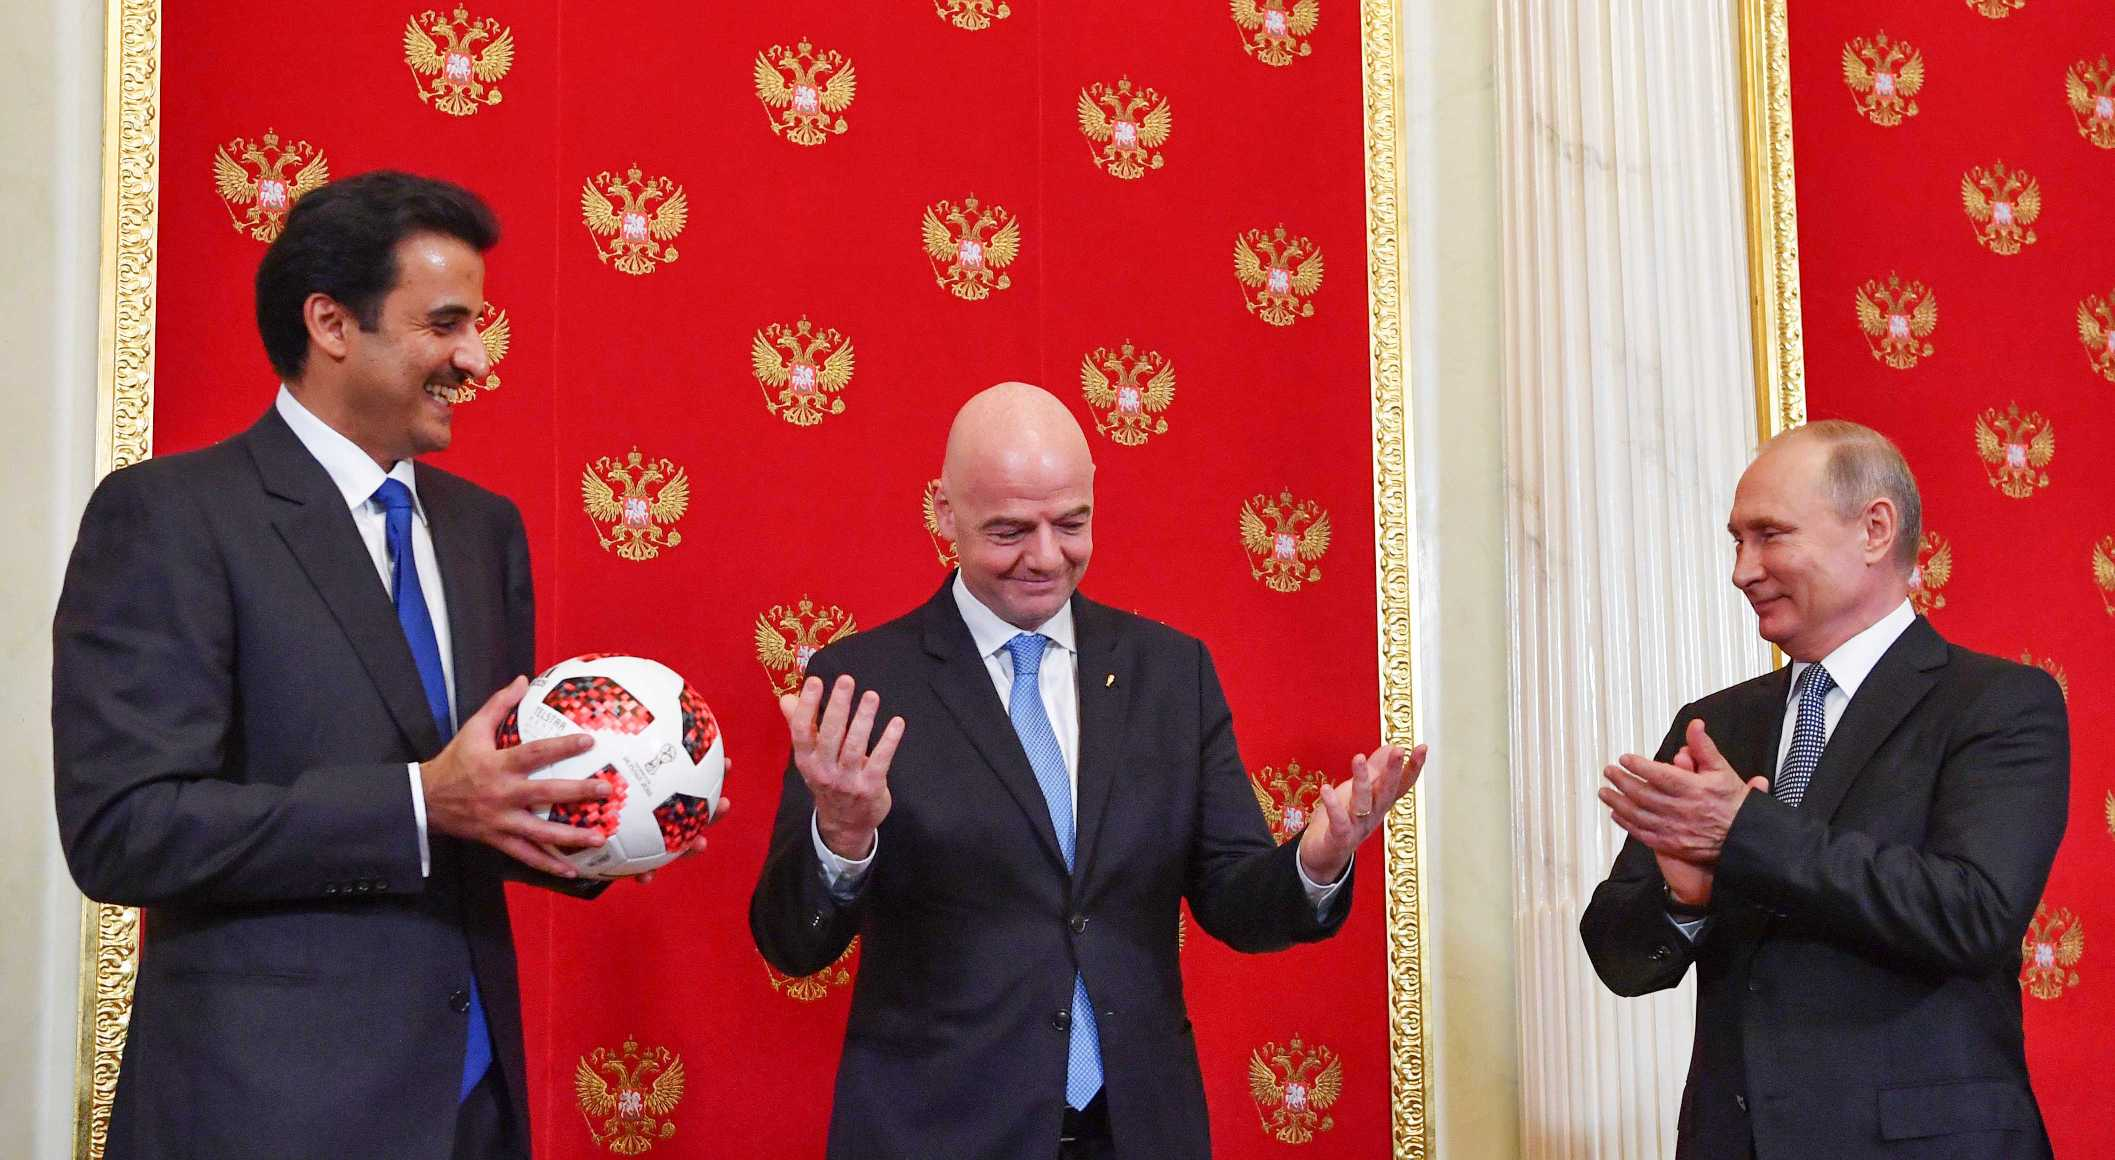 Qatar Emir Sheikh Tamim bin Hamad al-Thani, FIFA President Gianni Infantino and Russian President Vladimir Putin attend a handover ceremony for the 2022 World Cup at the Kremlin in Moscow, Russia July 15, 2018. Yuri Kadobnov/Pool via REUTERS